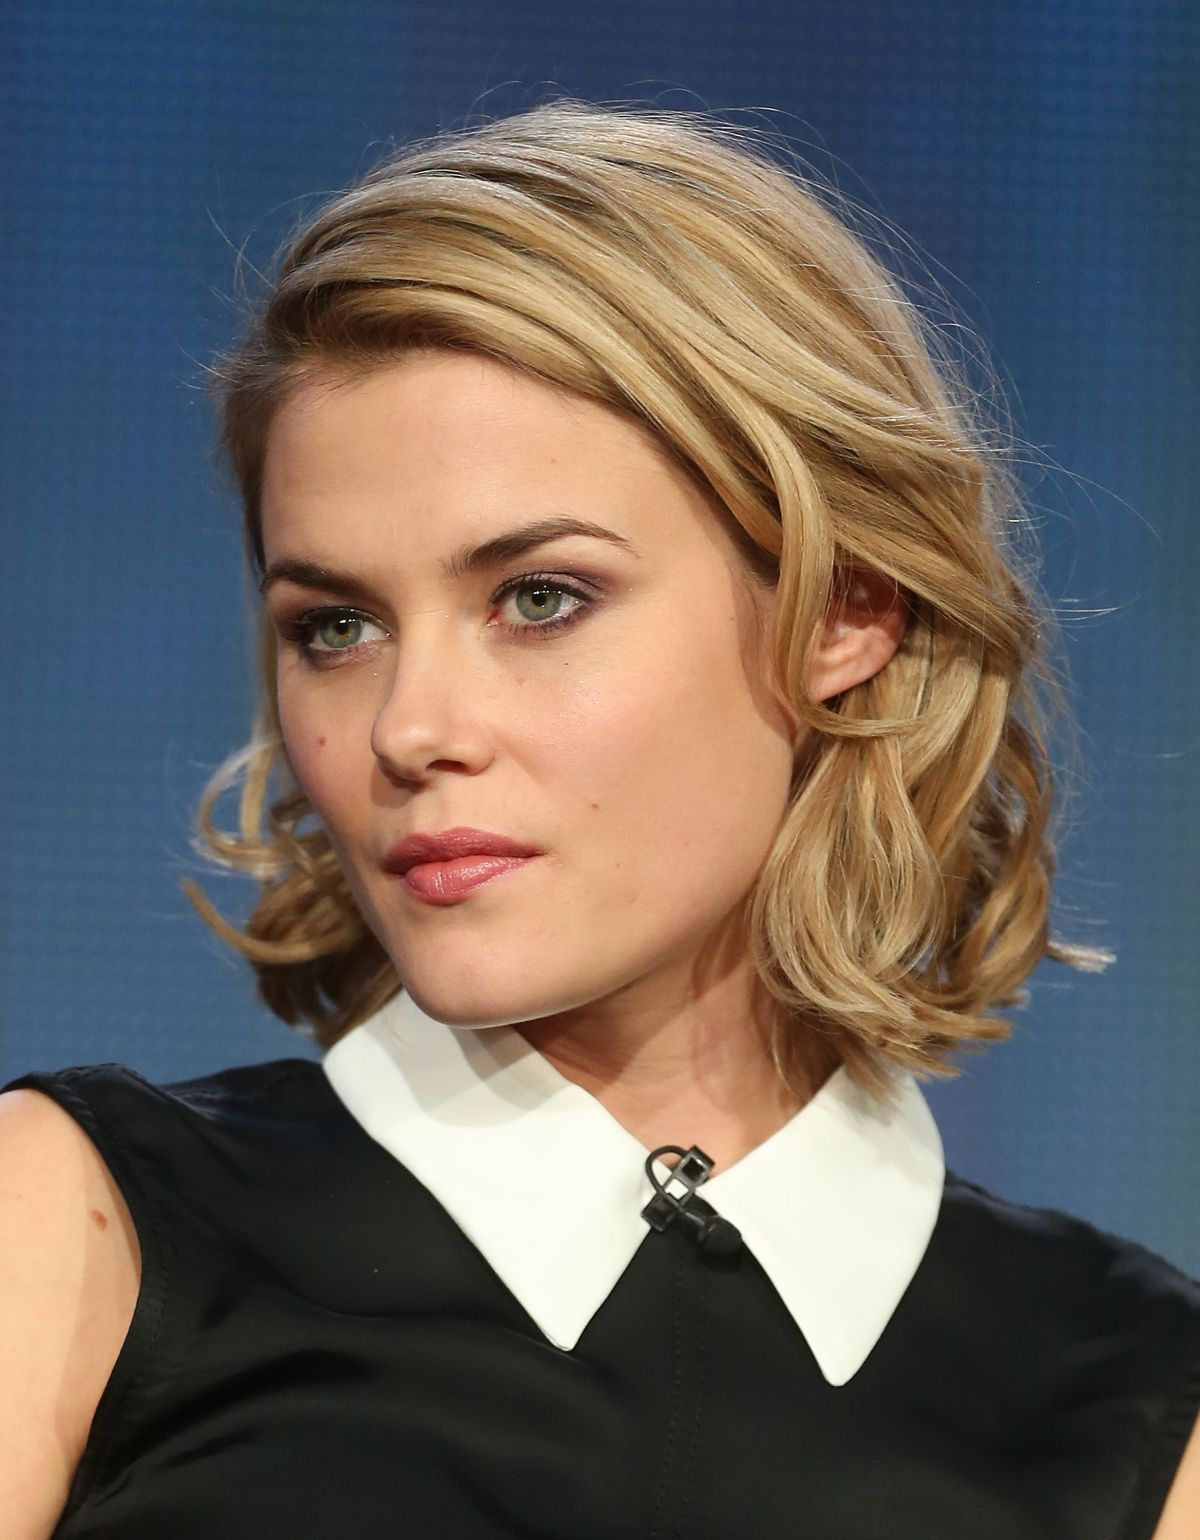 http://www.hawtcelebs.com/wp-content/uploads/2014/01/rachael-taylor-at-nbc-and-universal-2014-tca-winter-press-tour-in-pasadena_1.jpg